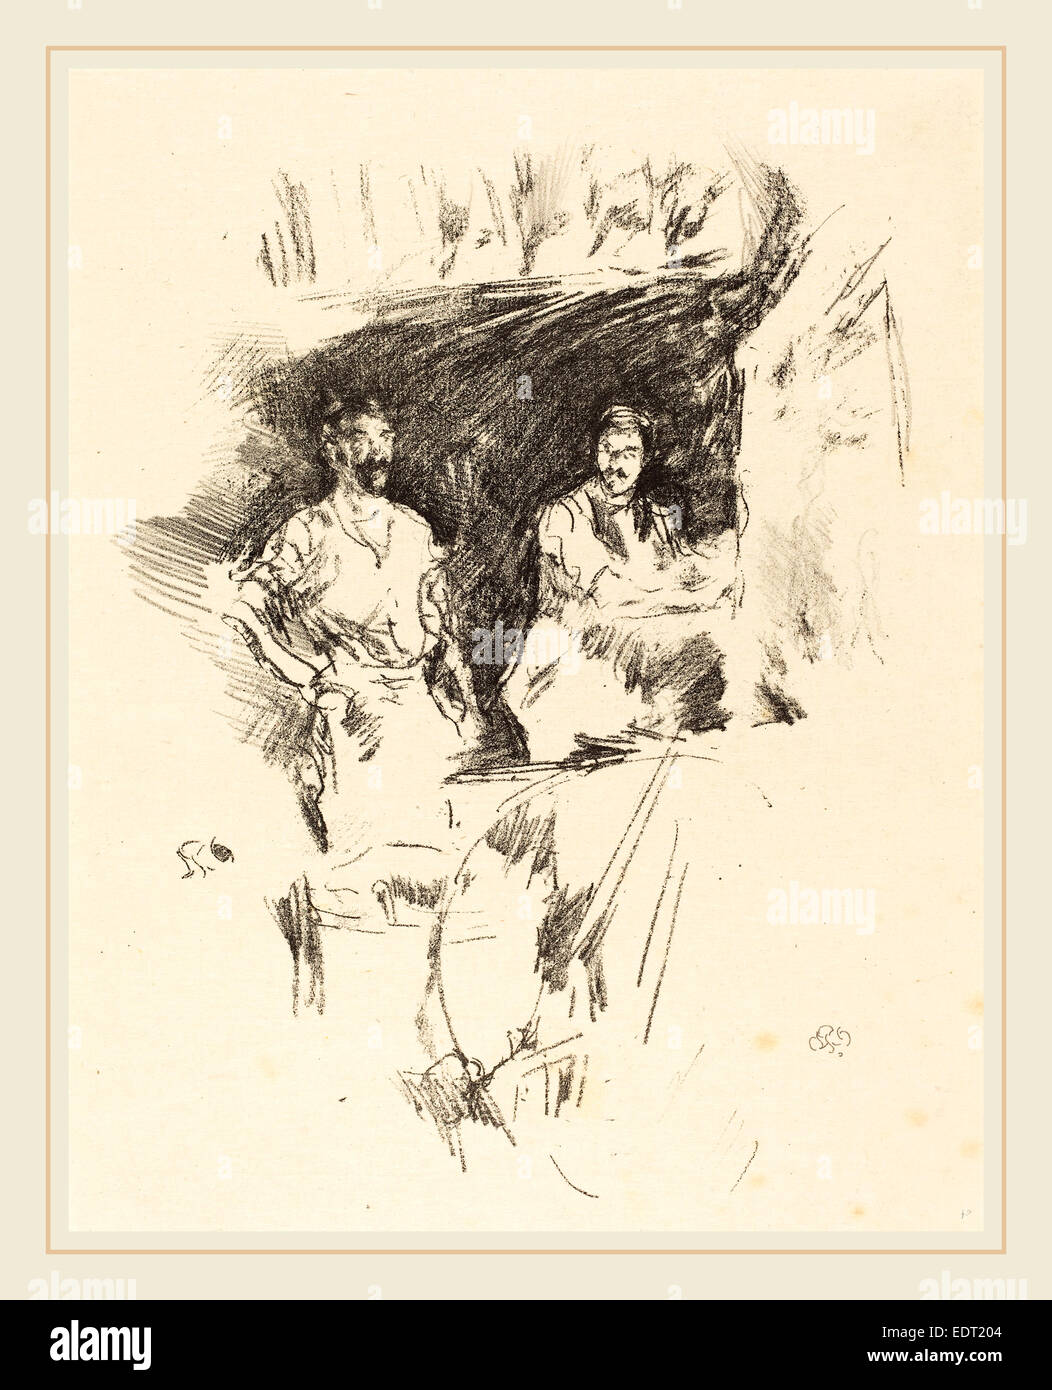 James McNeill Whistler (American, 1834-1903), The Brothers, 1895, lithograph - Stock Image